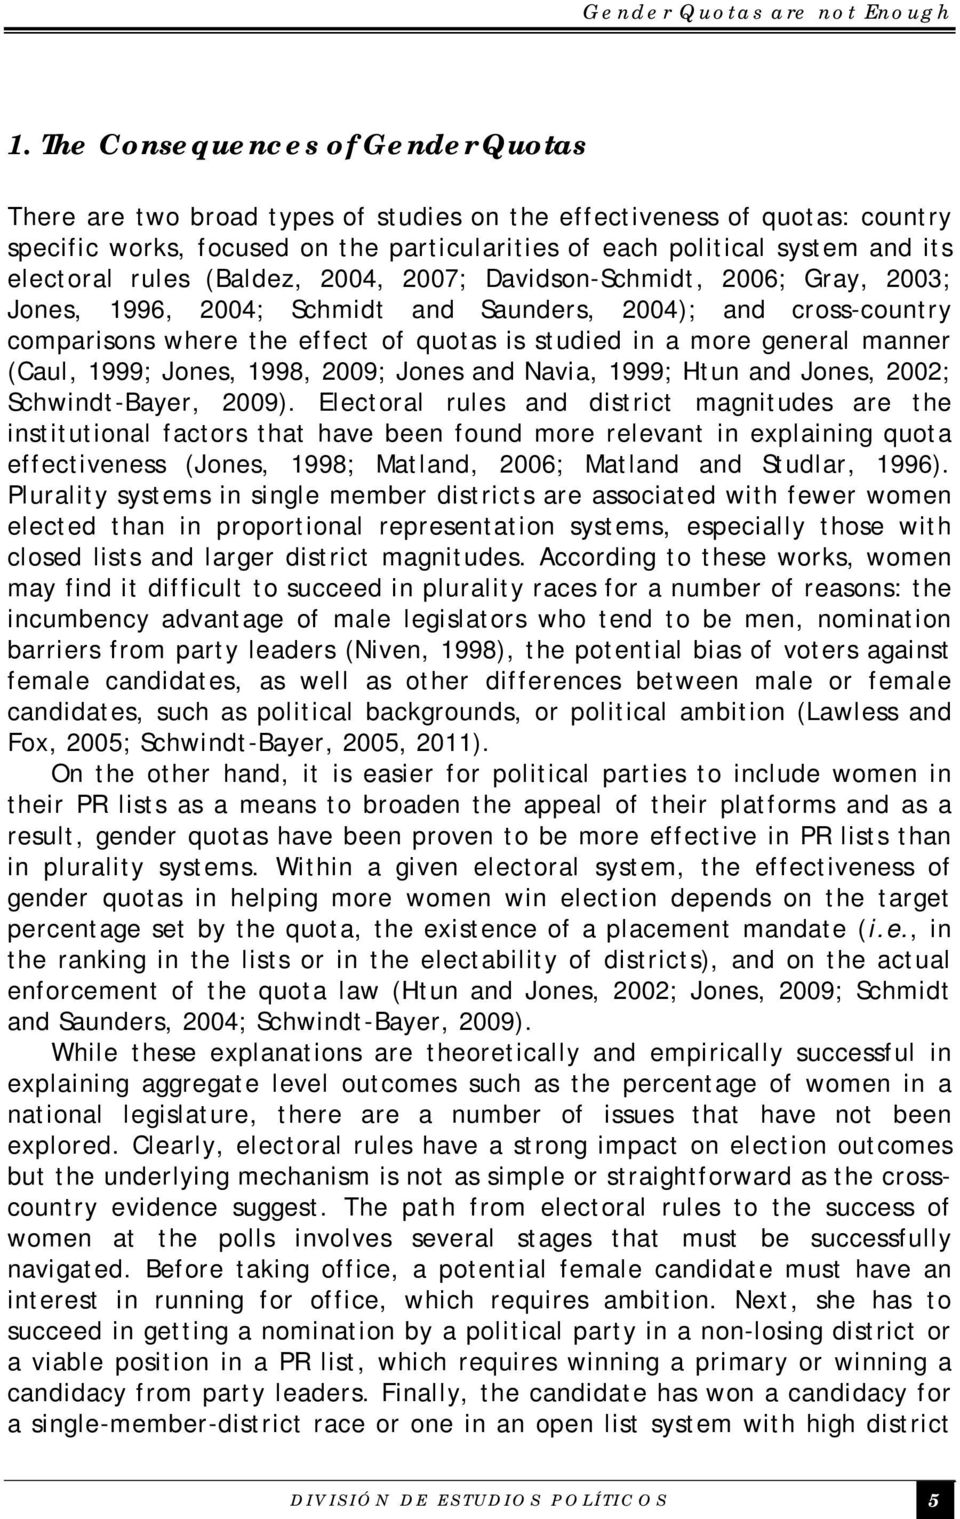 electoral rules (Baldez, 2004, 2007; Davidson-Schmidt, 2006; Gray, 2003; Jones, 1996, 2004; Schmidt and Saunders, 2004); and cross-country comparisons where the effect of quotas is studied in a more